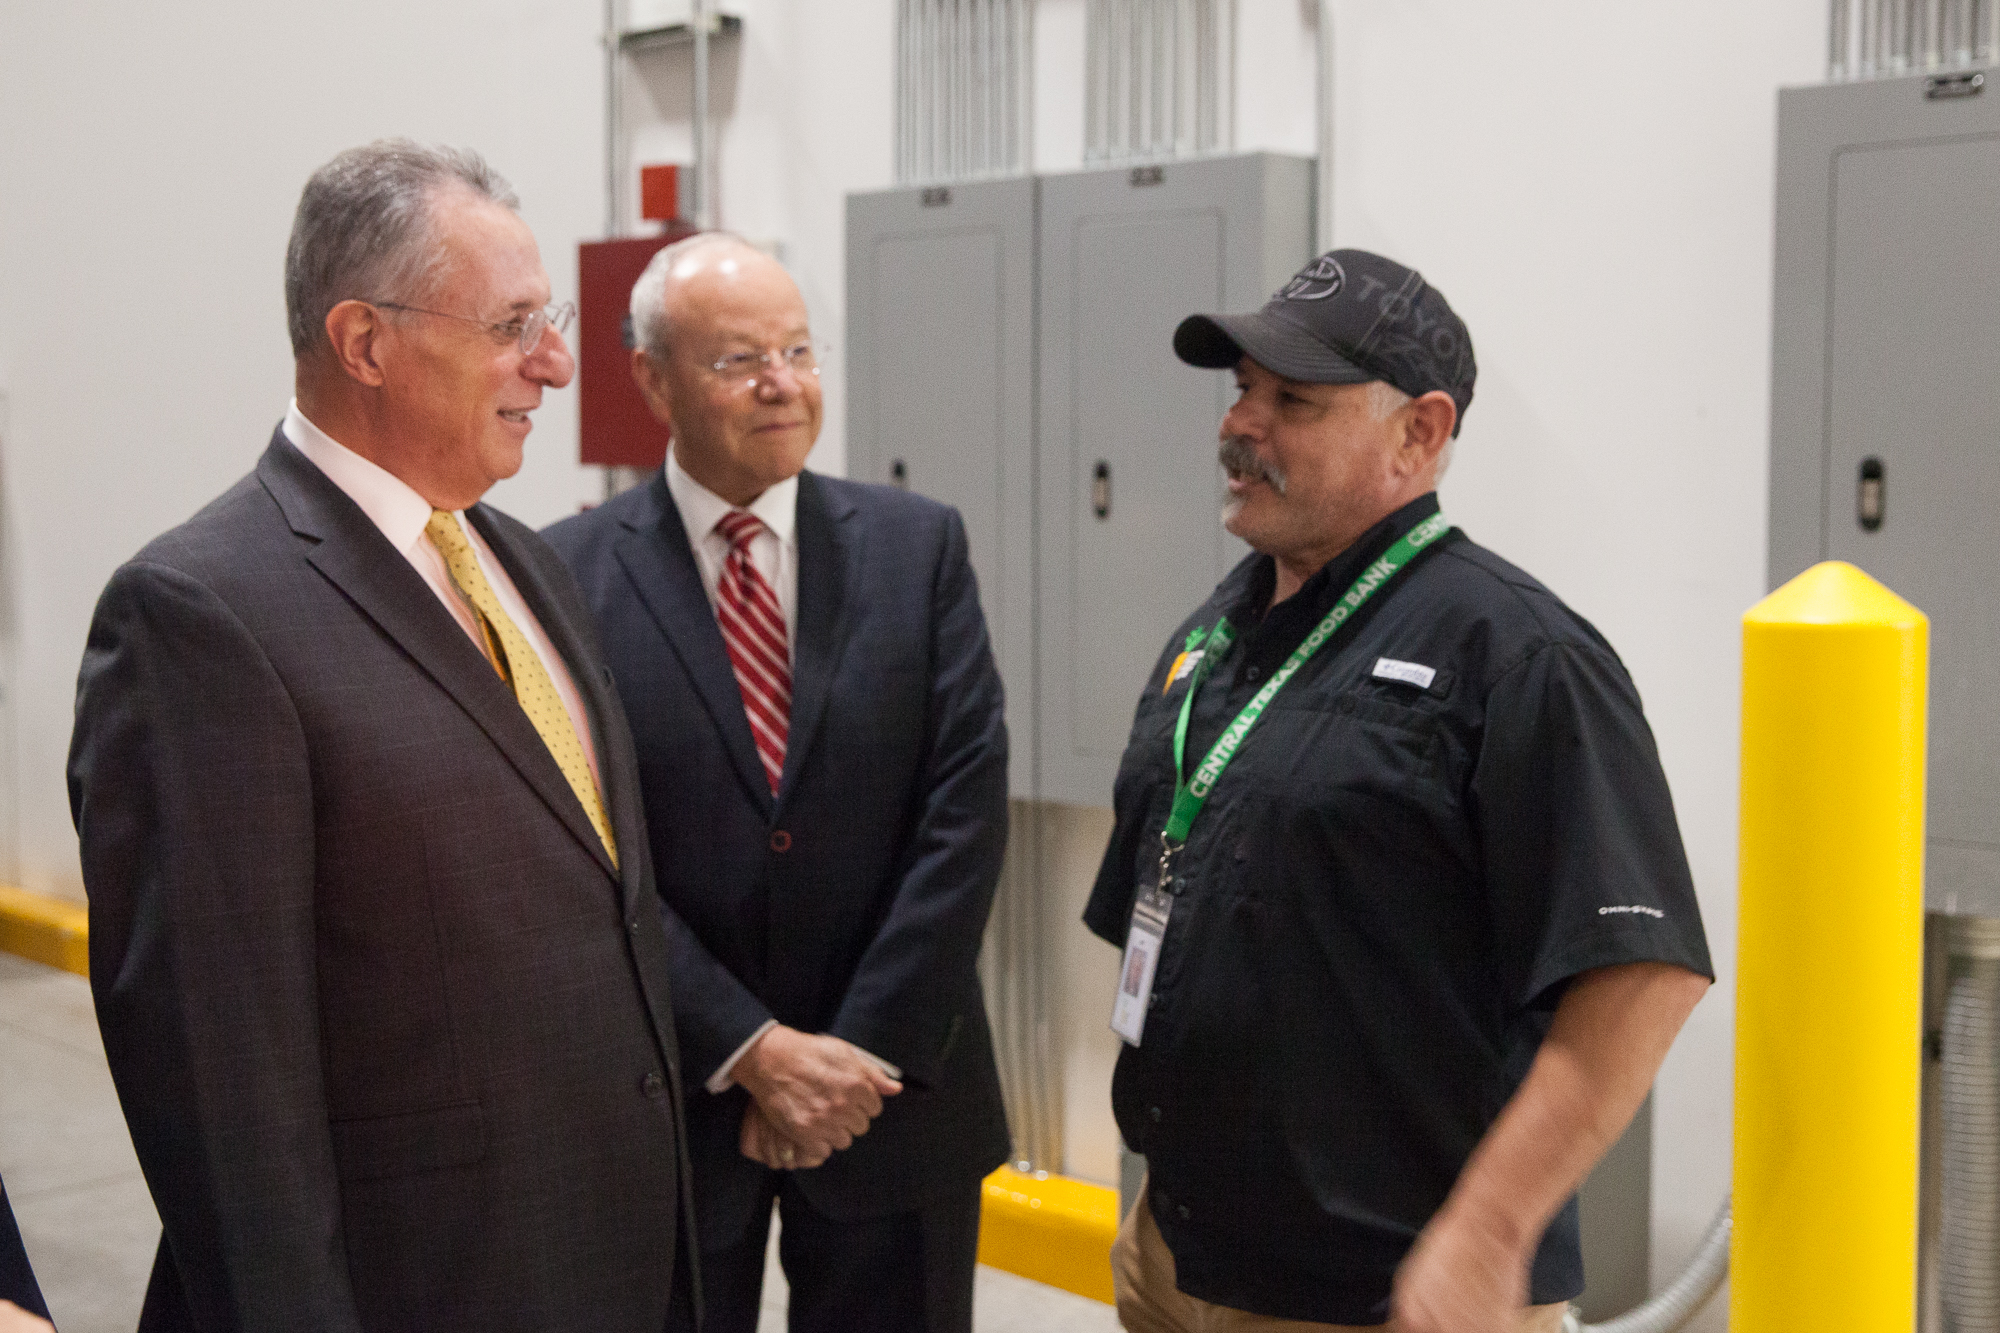 Elder Ulisses Soares speaks with an employee of the Central Texas Food Bank during a visit on Oct. 18, 2019.